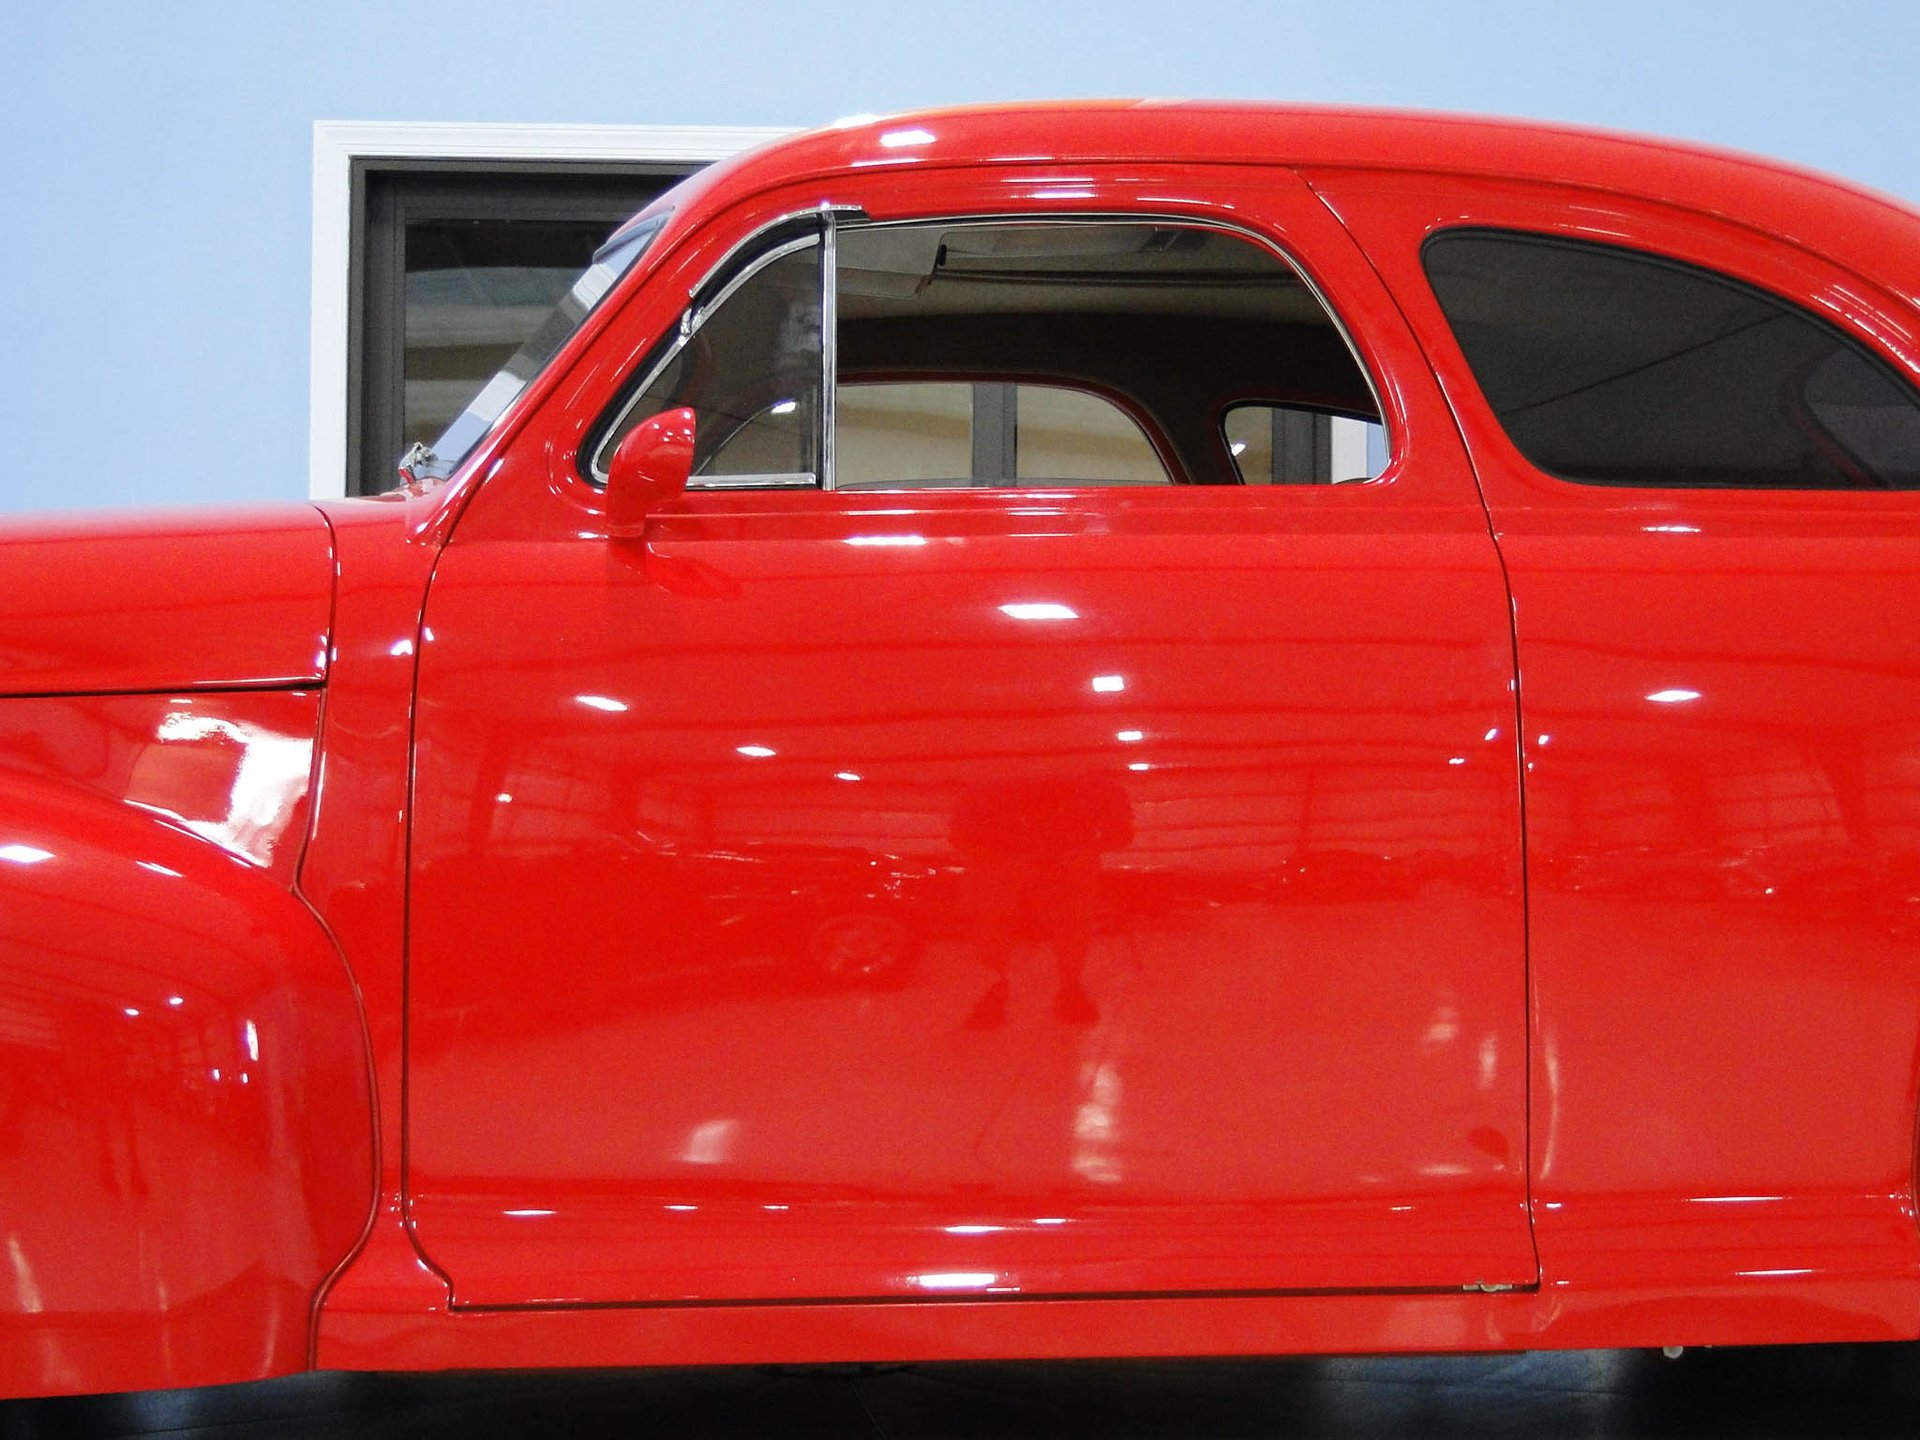 1941 Chevrolet Business Coupe | Classic Cars & Used Cars For Sale in